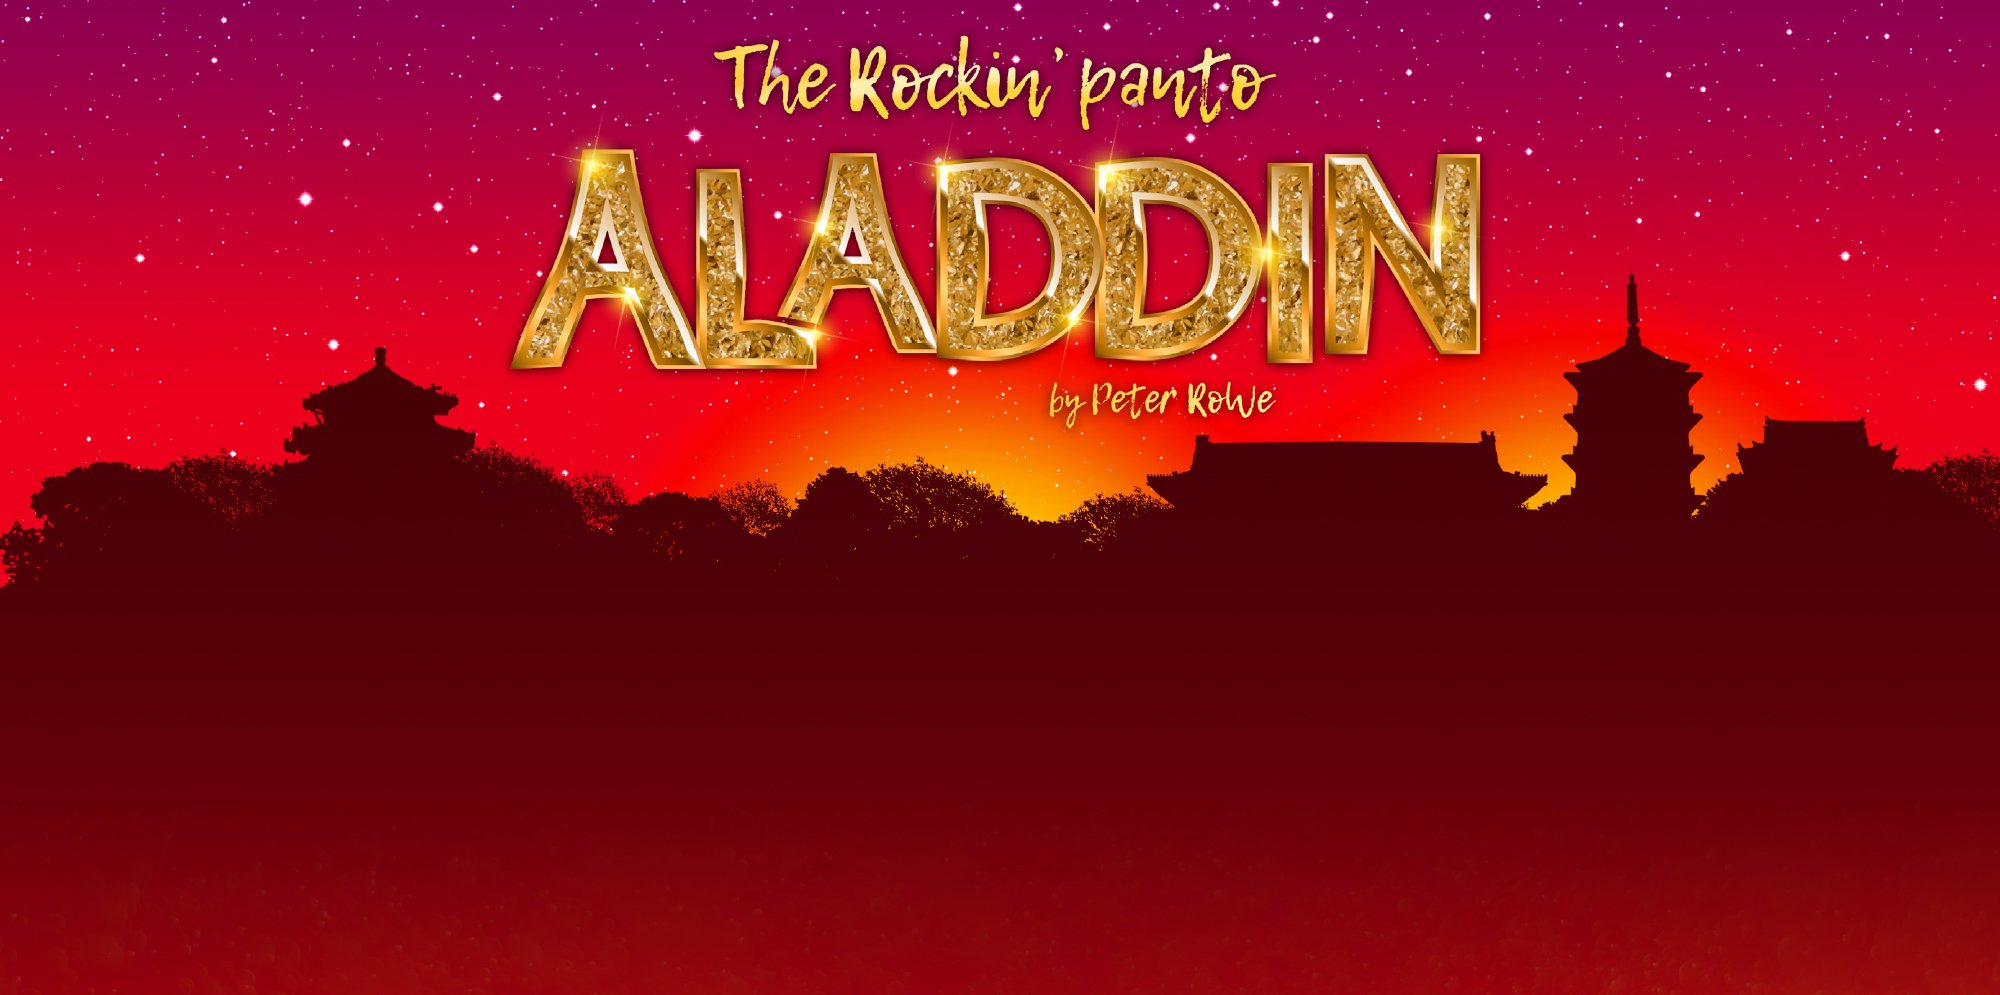 the title Aladdin The rockin panto on red background